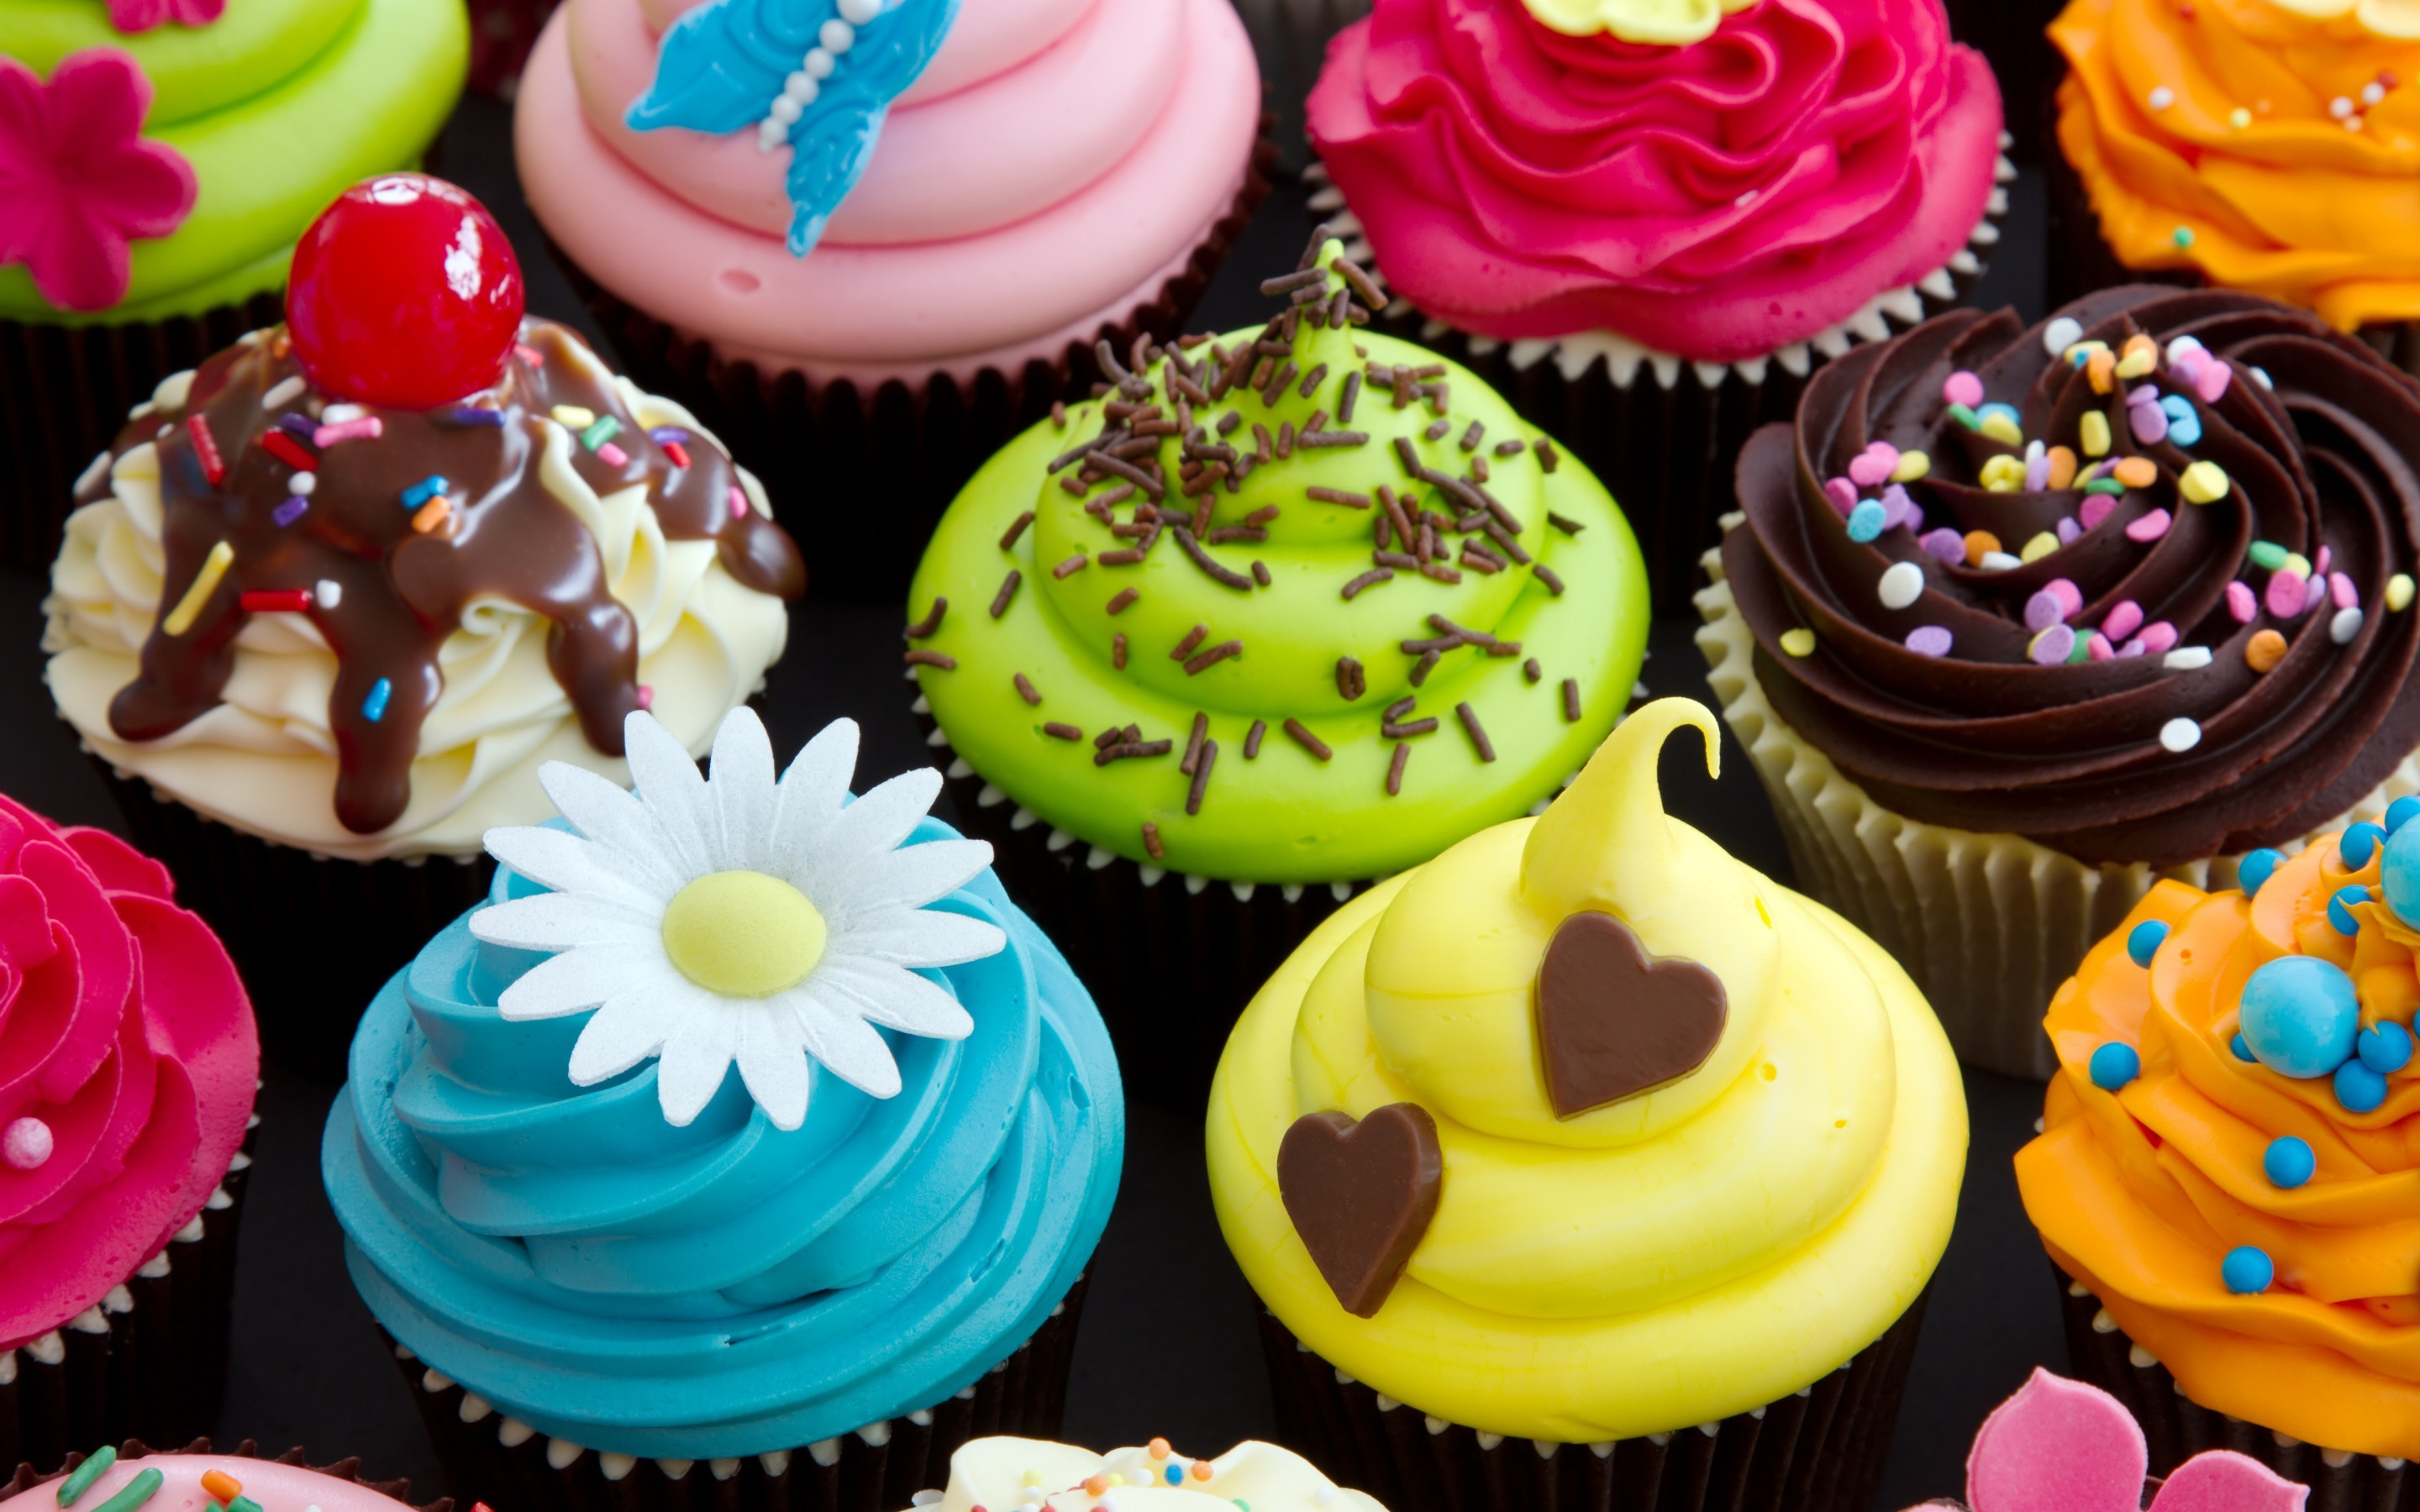 cupcake background ·① download free full hd backgrounds for desktop